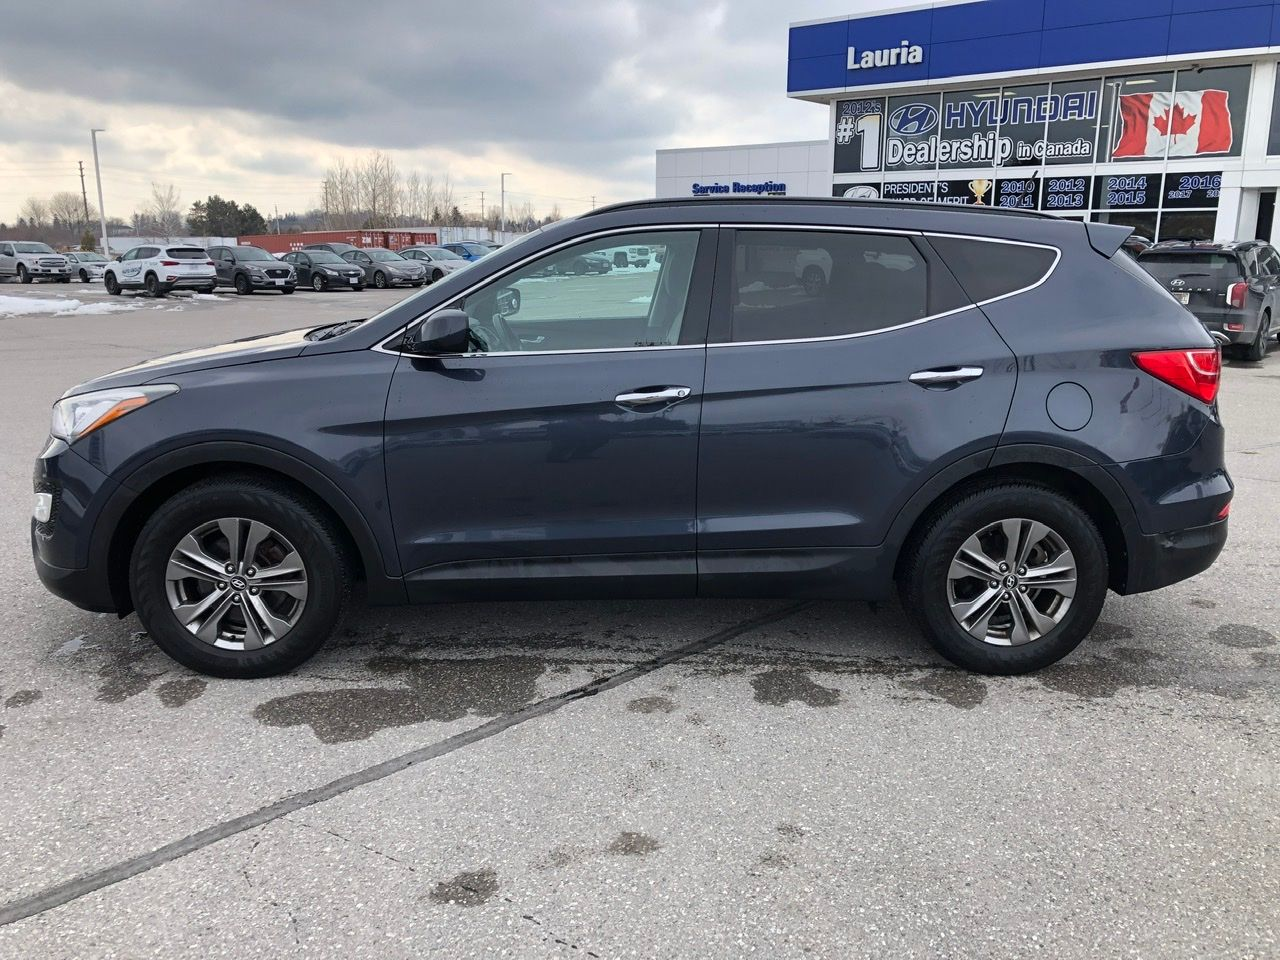 Pre-Owned 2013 Hyundai Santa Fe 2.4L AWD Premium - LOW KMS